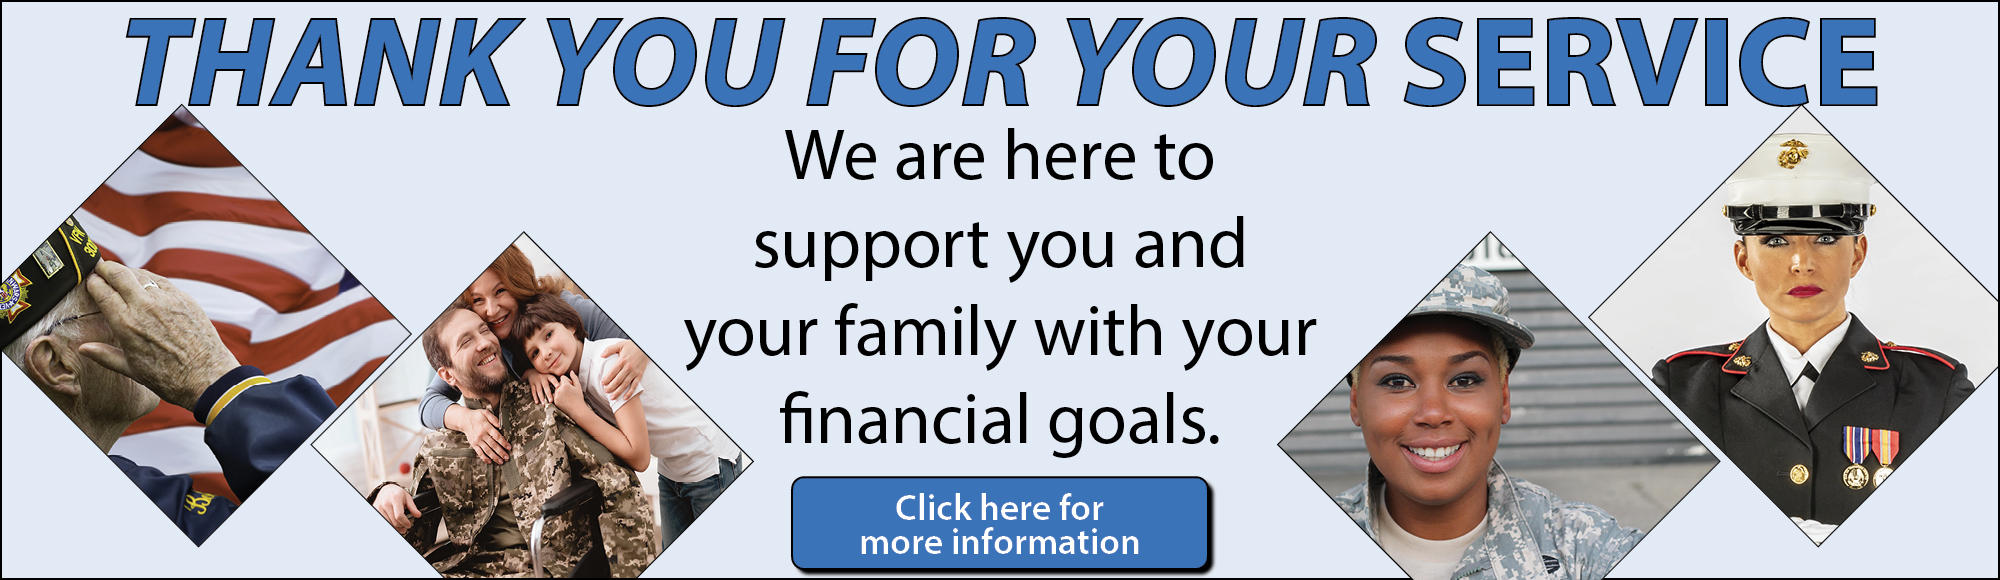 image - Thank you for your service, We are here to support you and your family with your financial goals